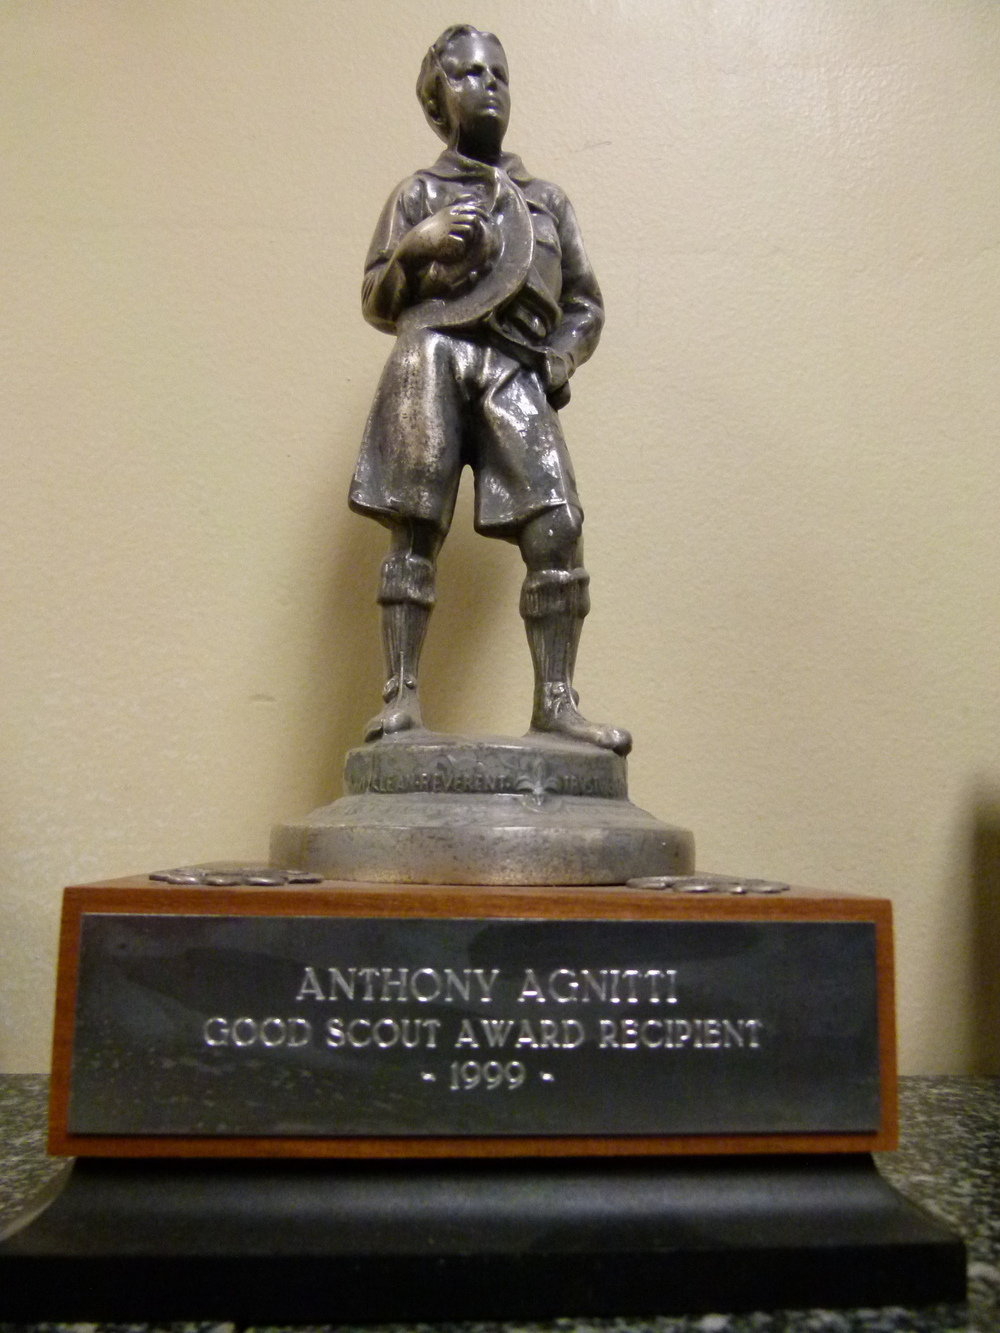 Anthony-Agnitti-Good-scout-award-recipient